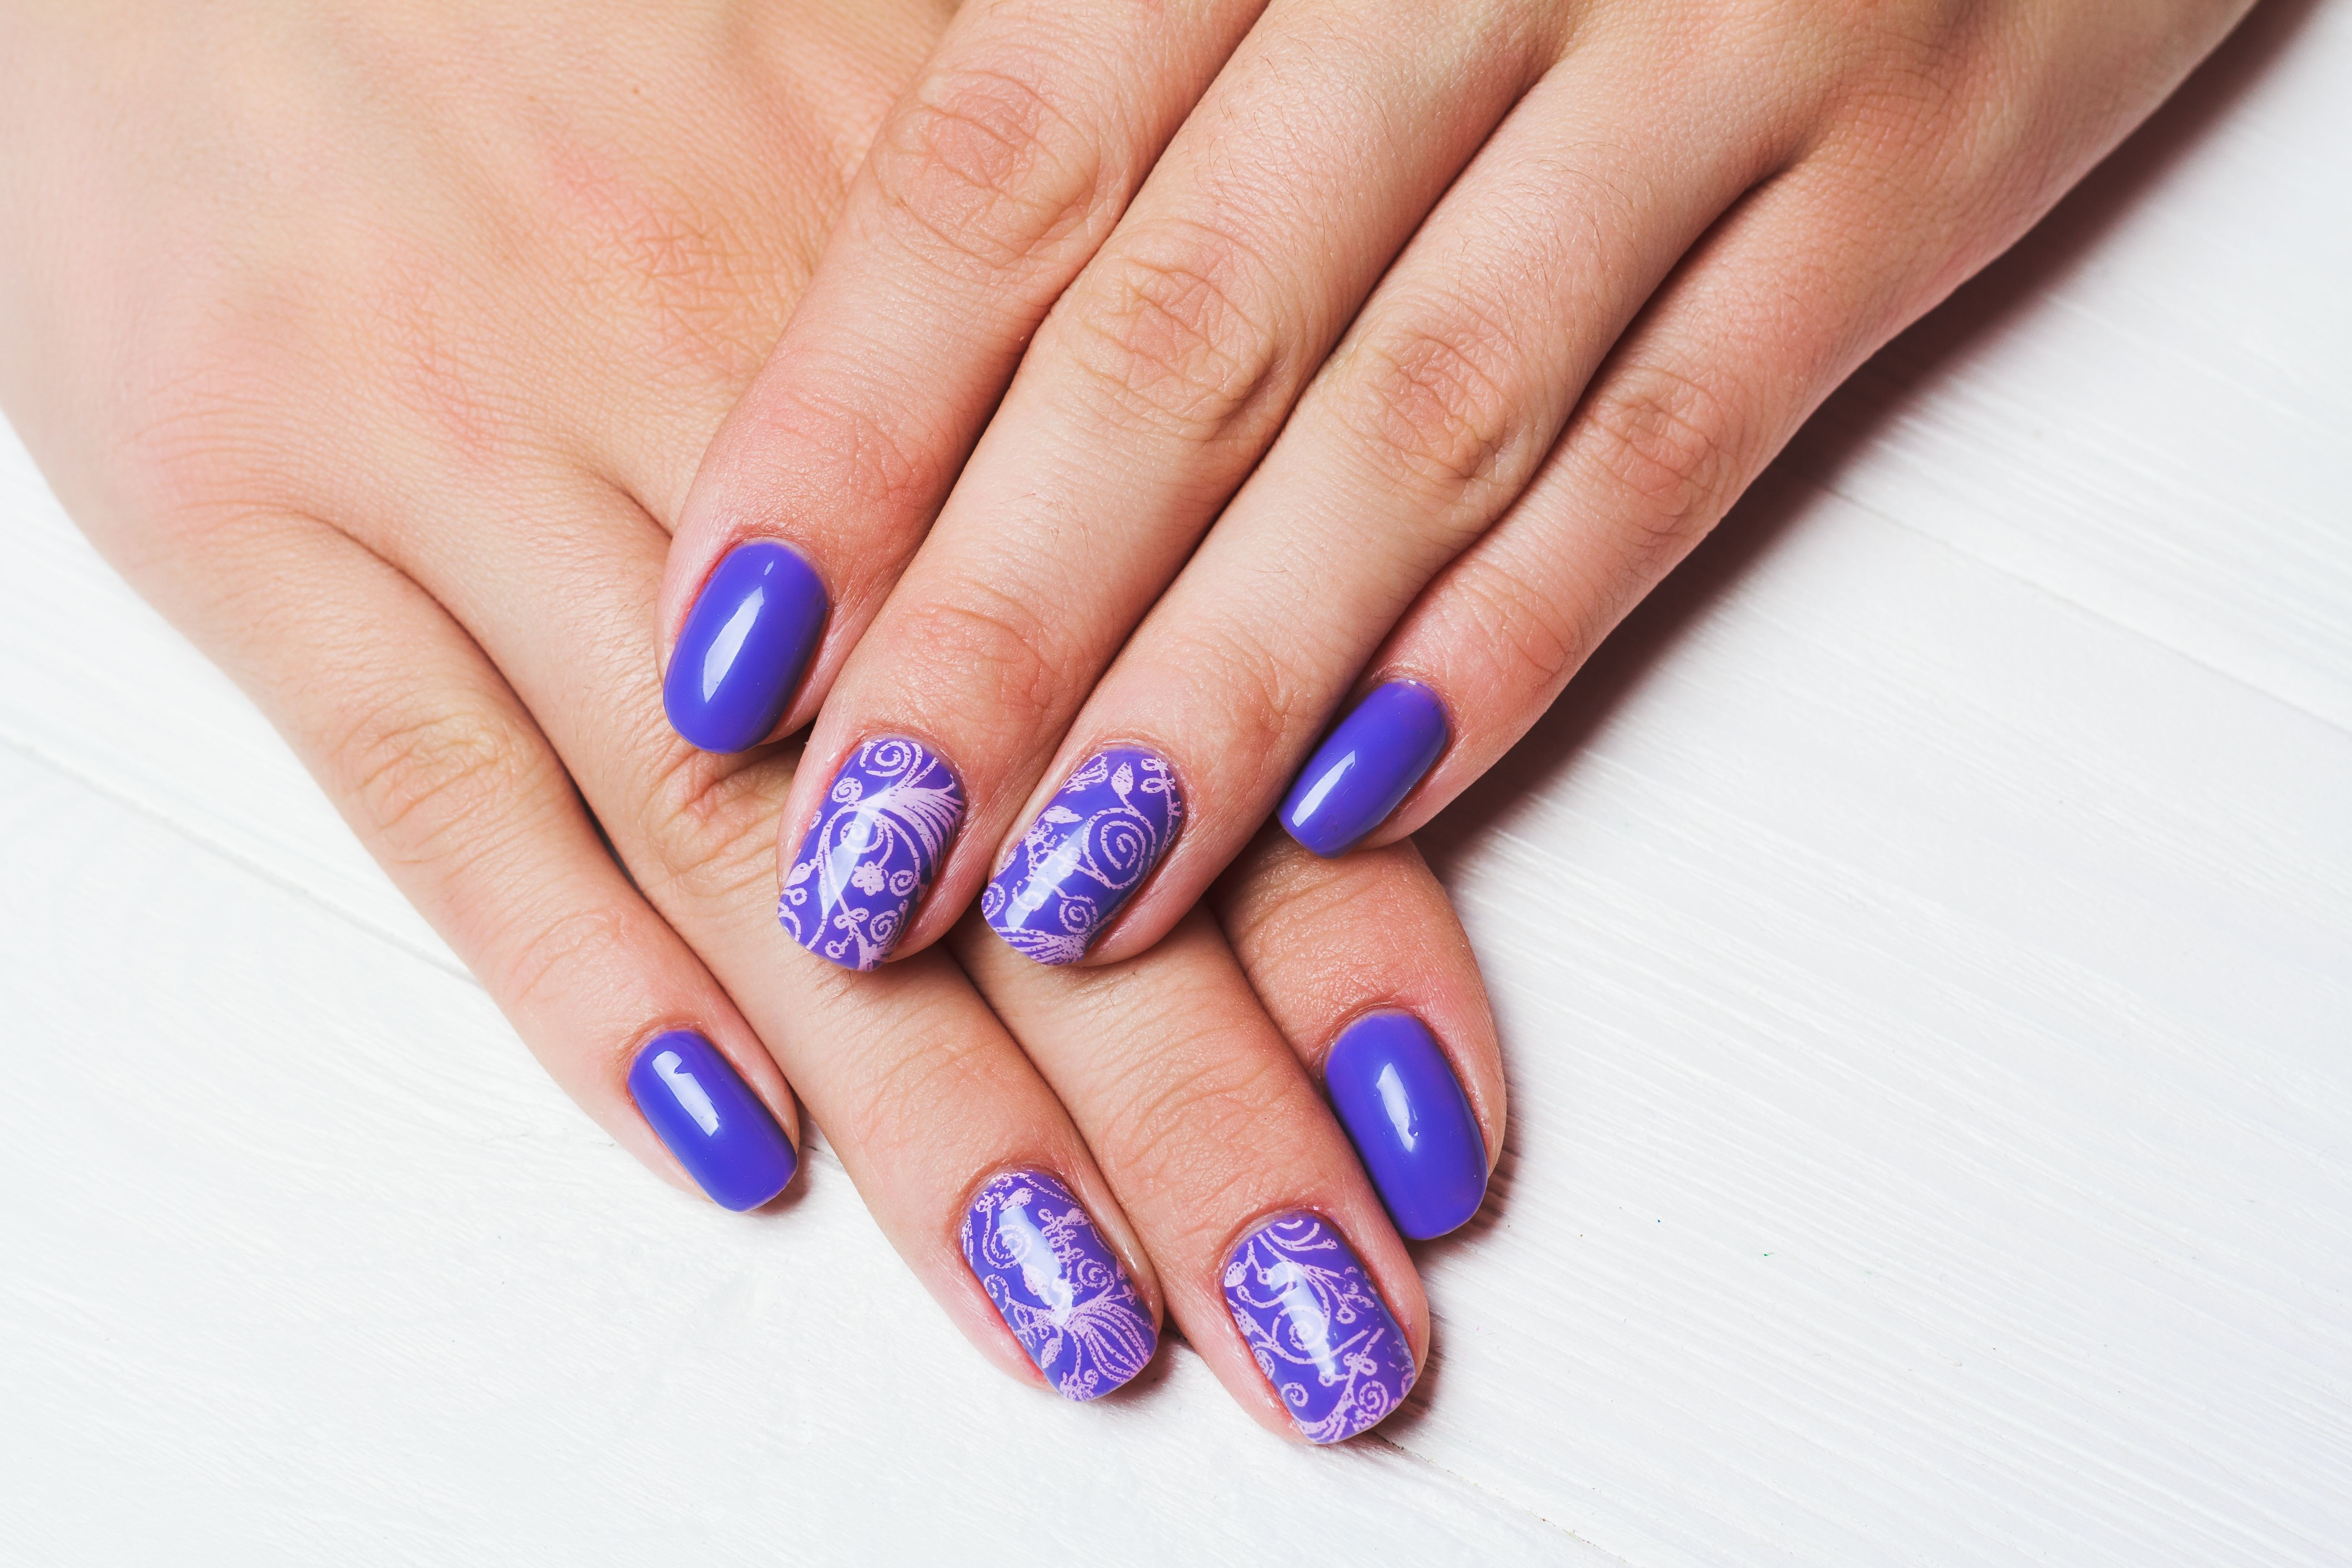 How To Properly Apply Nail Art Stickers Nail Art Stickers